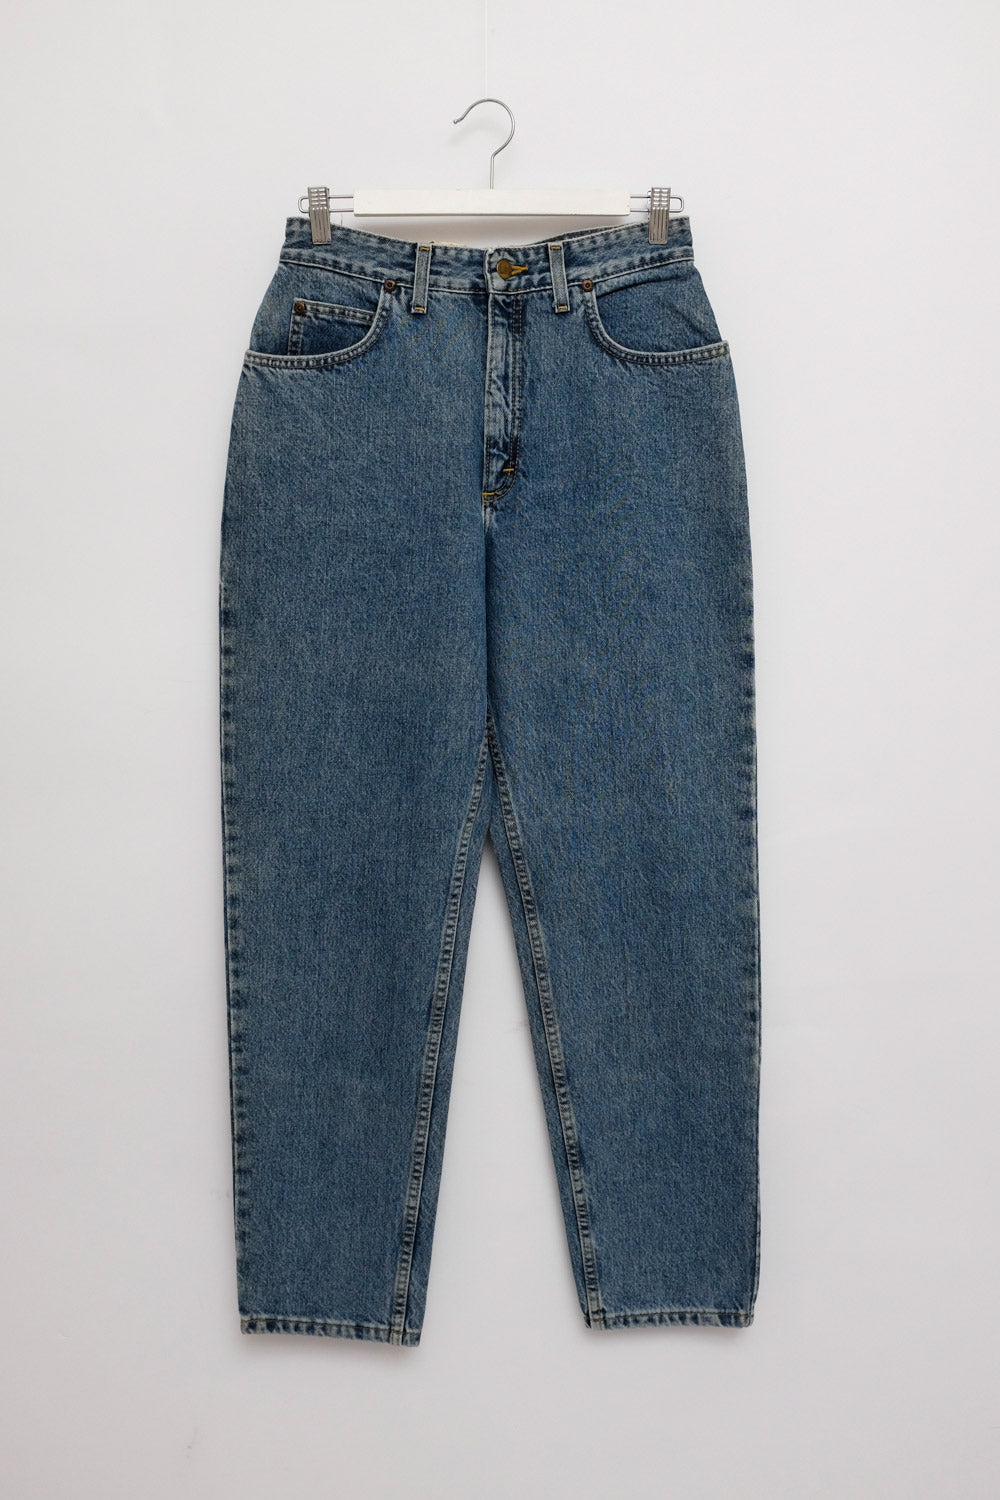 0025_LEE HIGH WAIST TAPERED JEANS VINTAGE